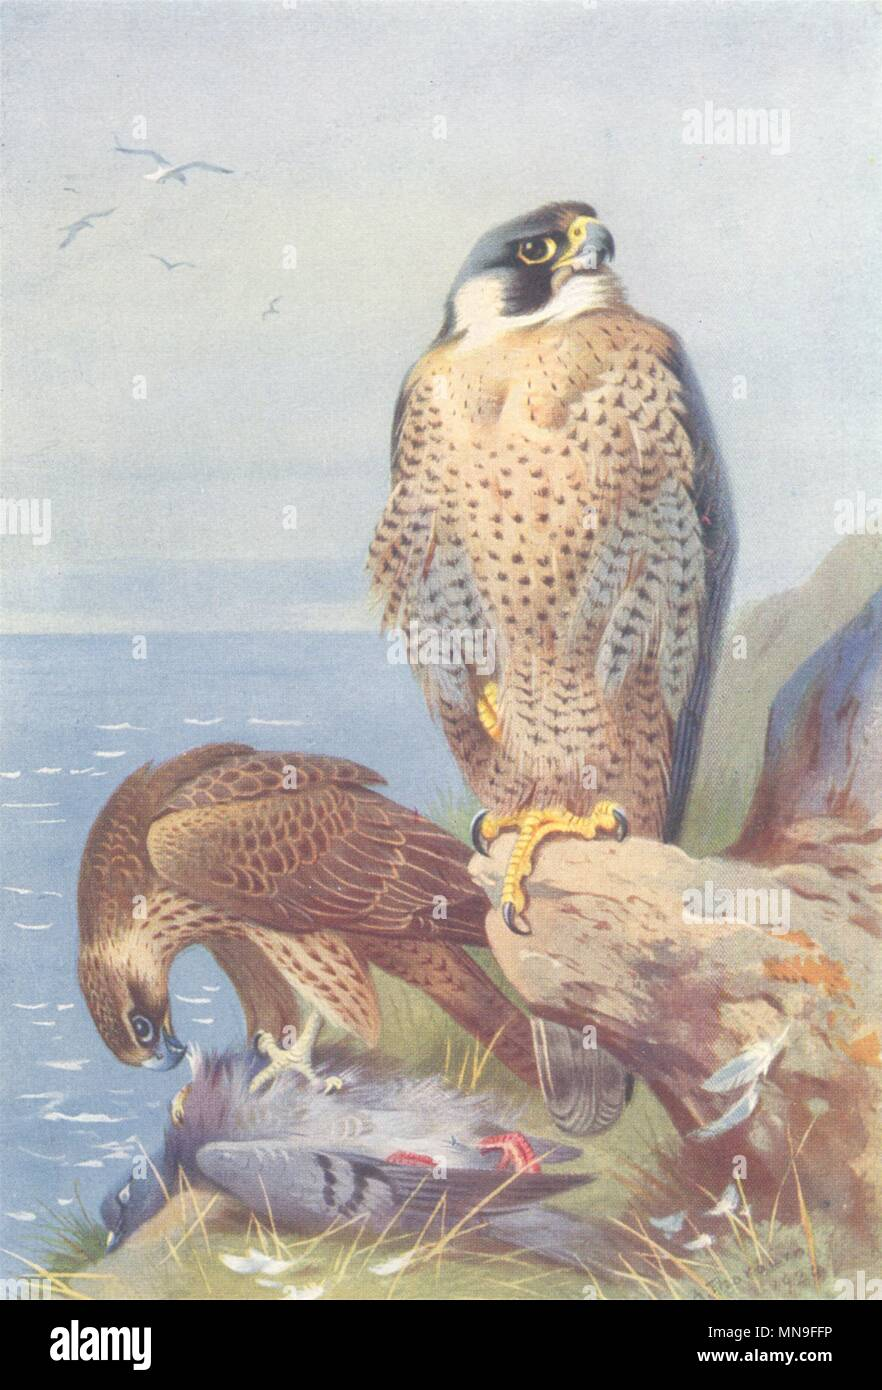 8b8056dcb60f9 BRITISH BIRDS. Peregrine Falcon. THORBURN 1925 old vintage print ...